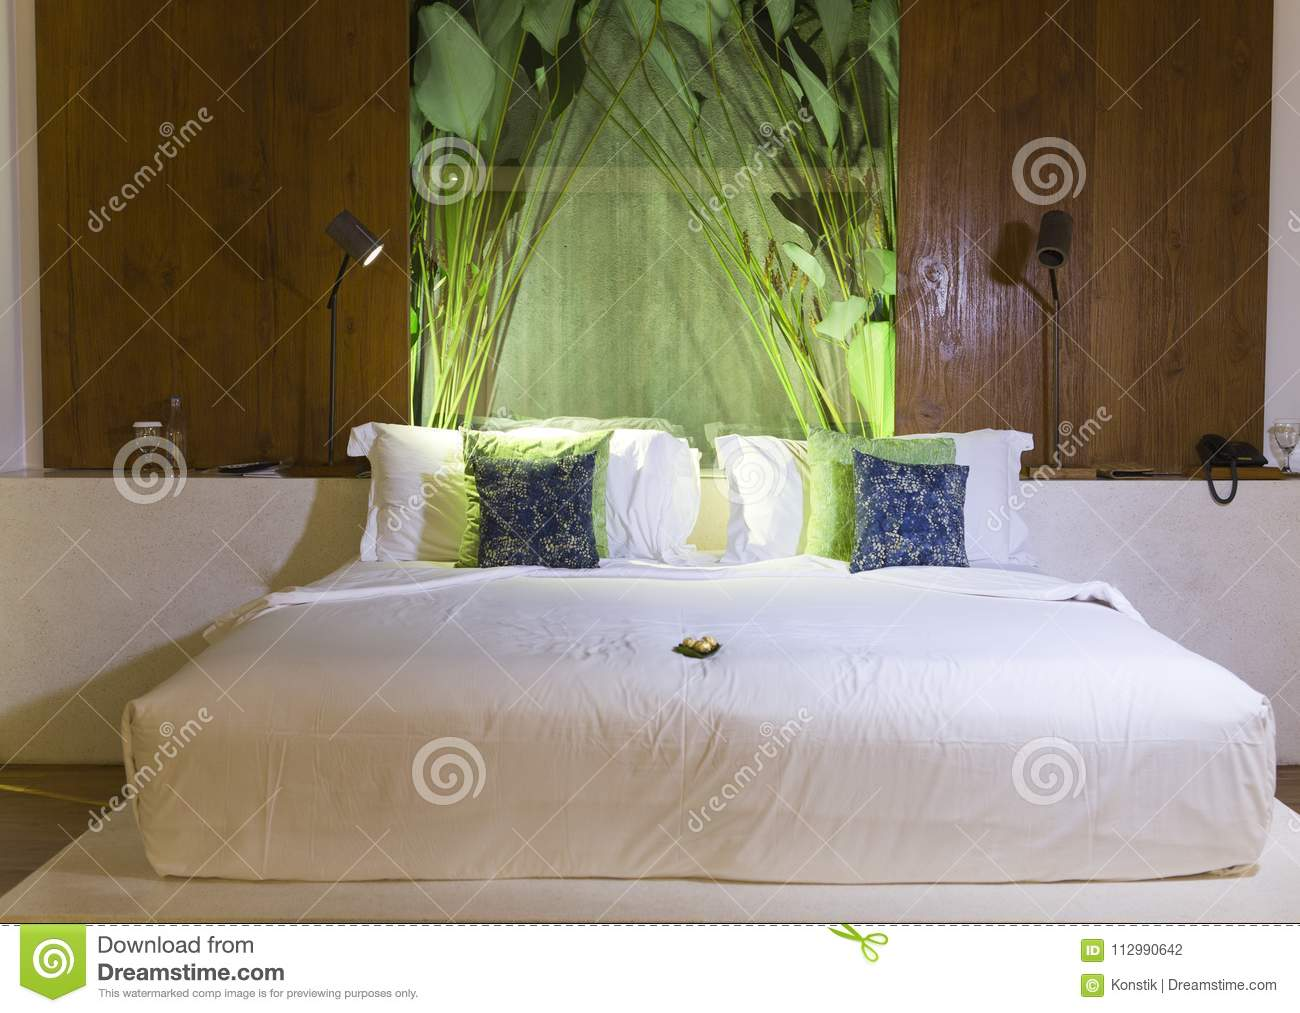 Big bed with throw pillows